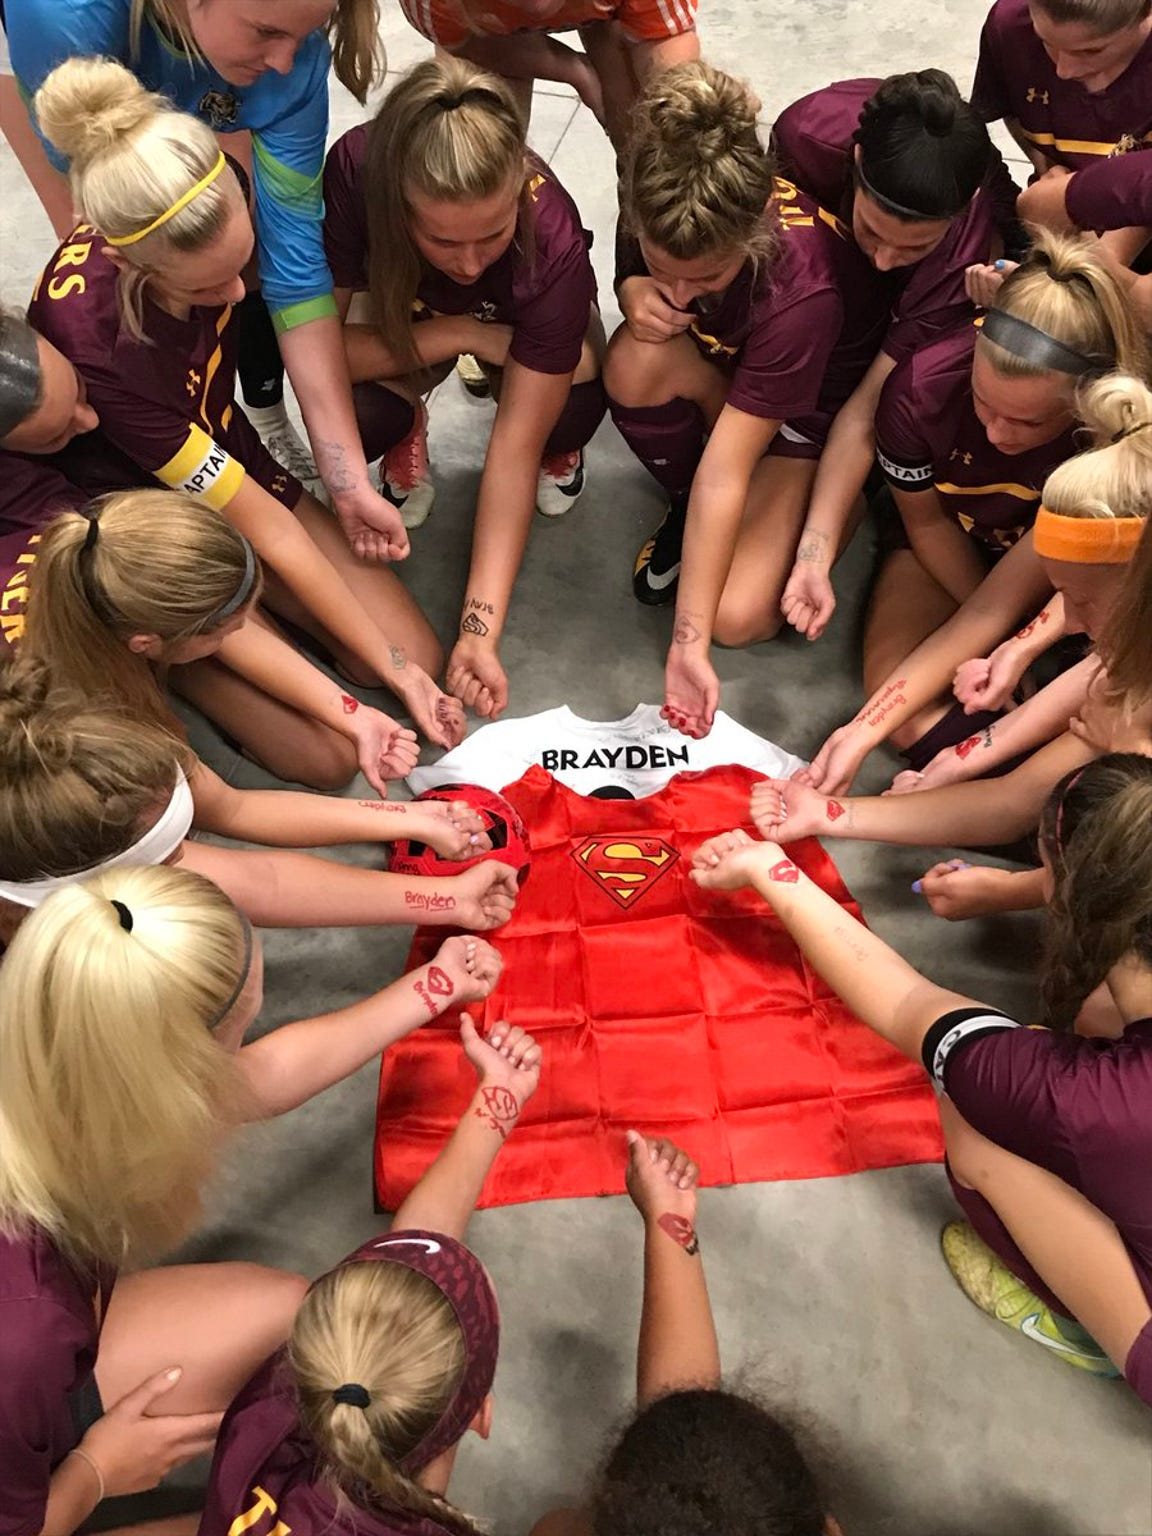 Members of the Harrisburg girls soccer team honor Brayden before their game against O'Gorman.